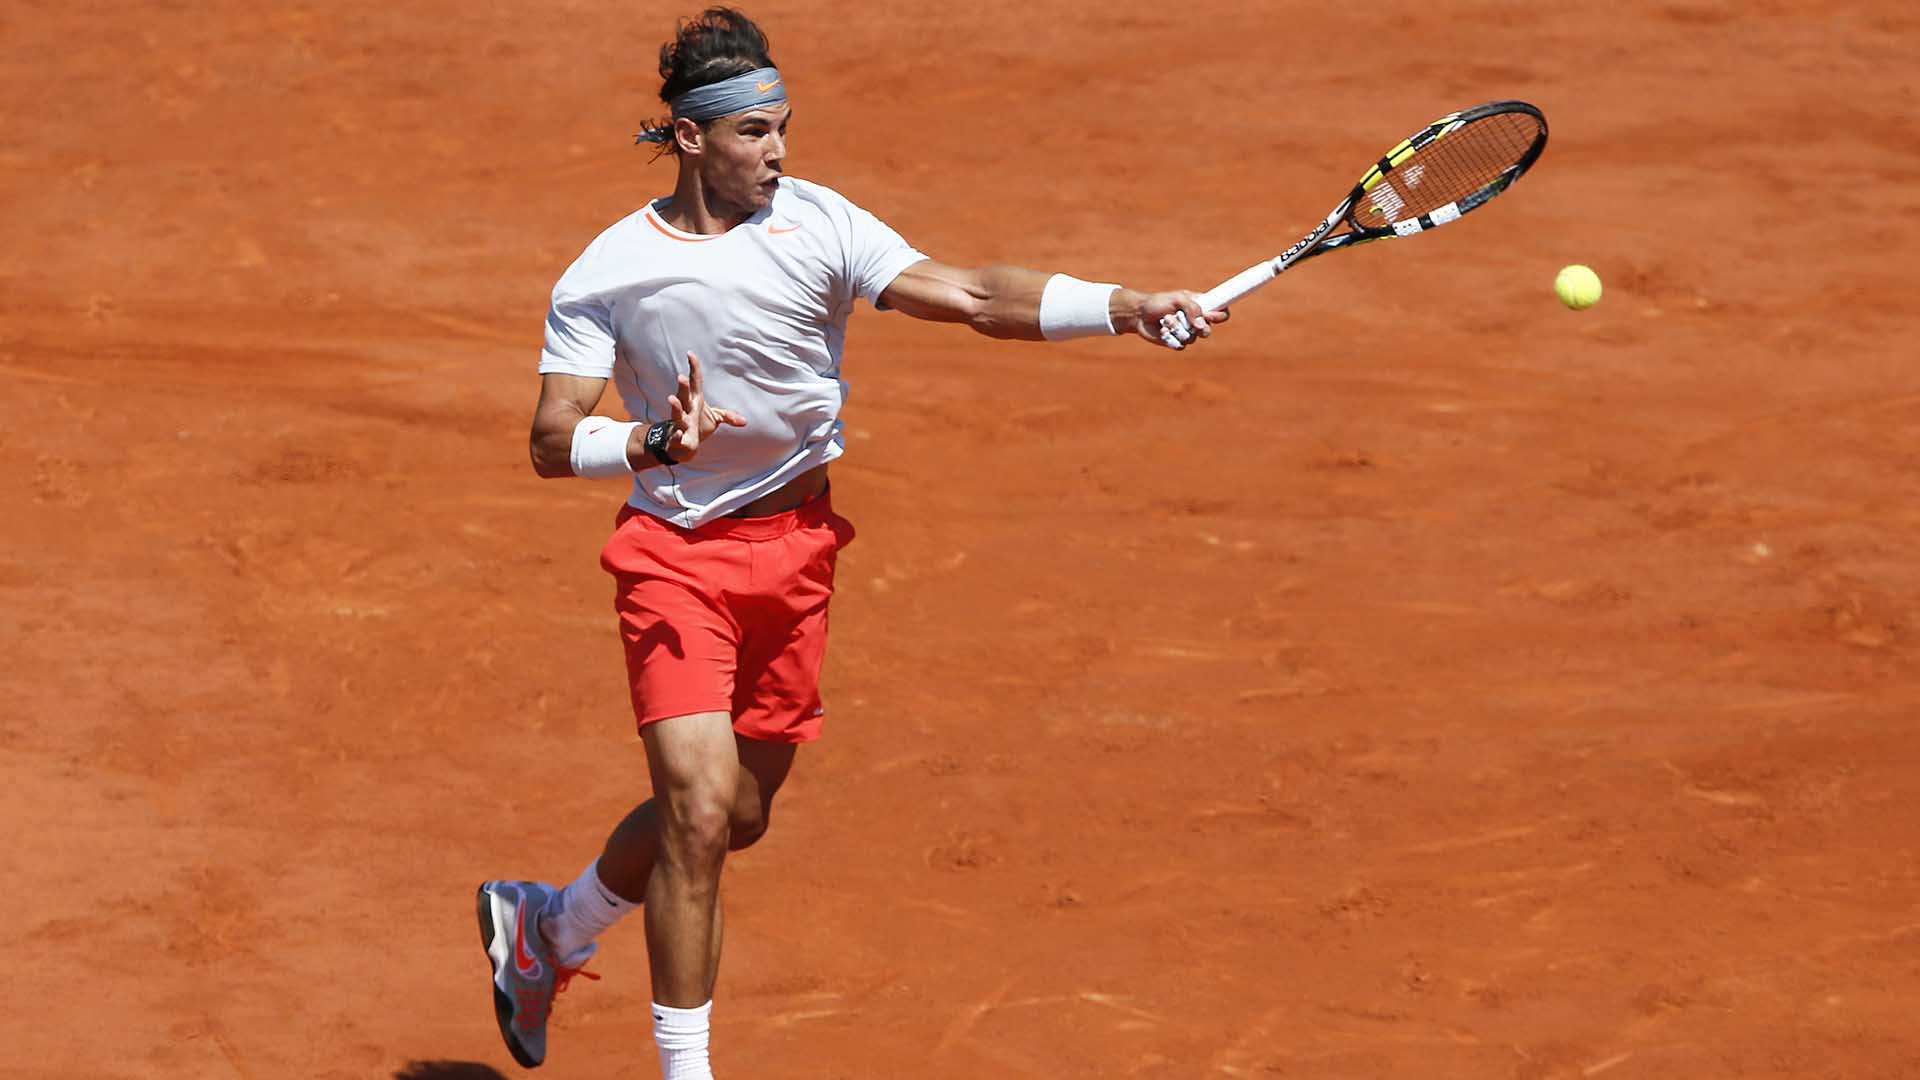 Rafael Nadal advanced to his eighth Roland Garros final with a five-set victory against Novak Djokovic in 2013.